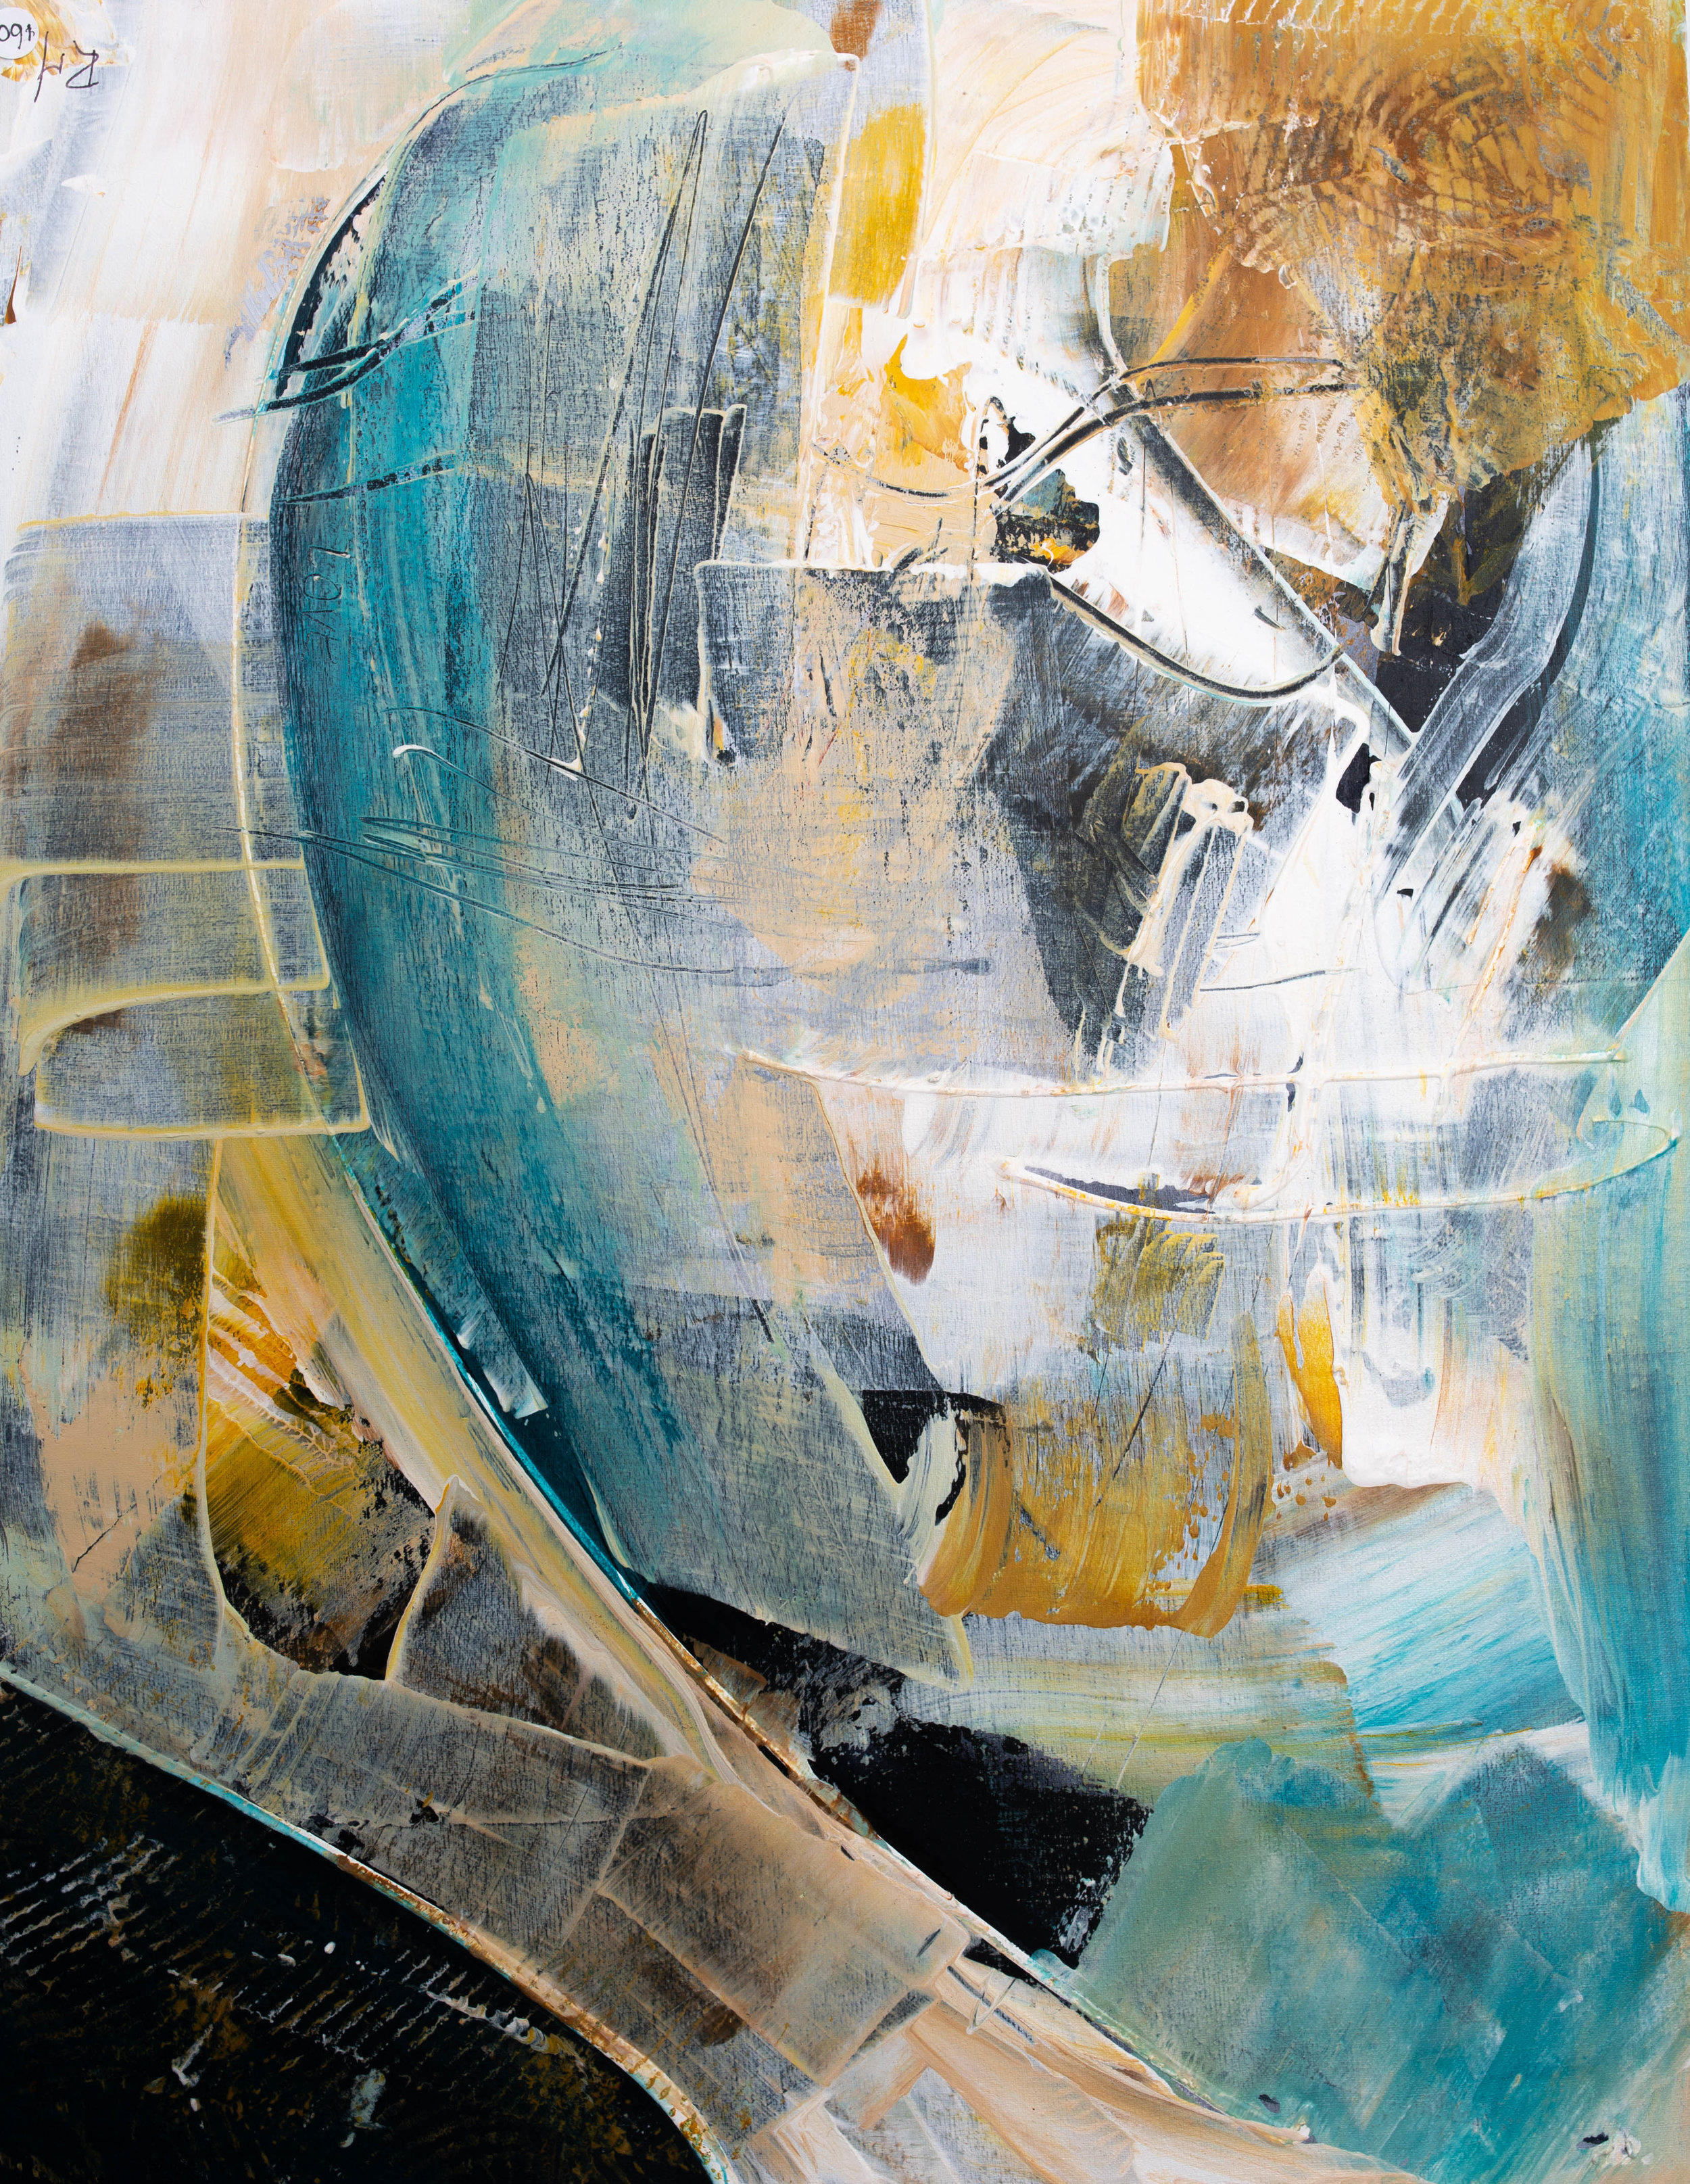 LOST IN MOTION  45 X 35 X 3CM ACRYLIC ON CANVAS  $100   CLICK HERE FOR ENQUIRY